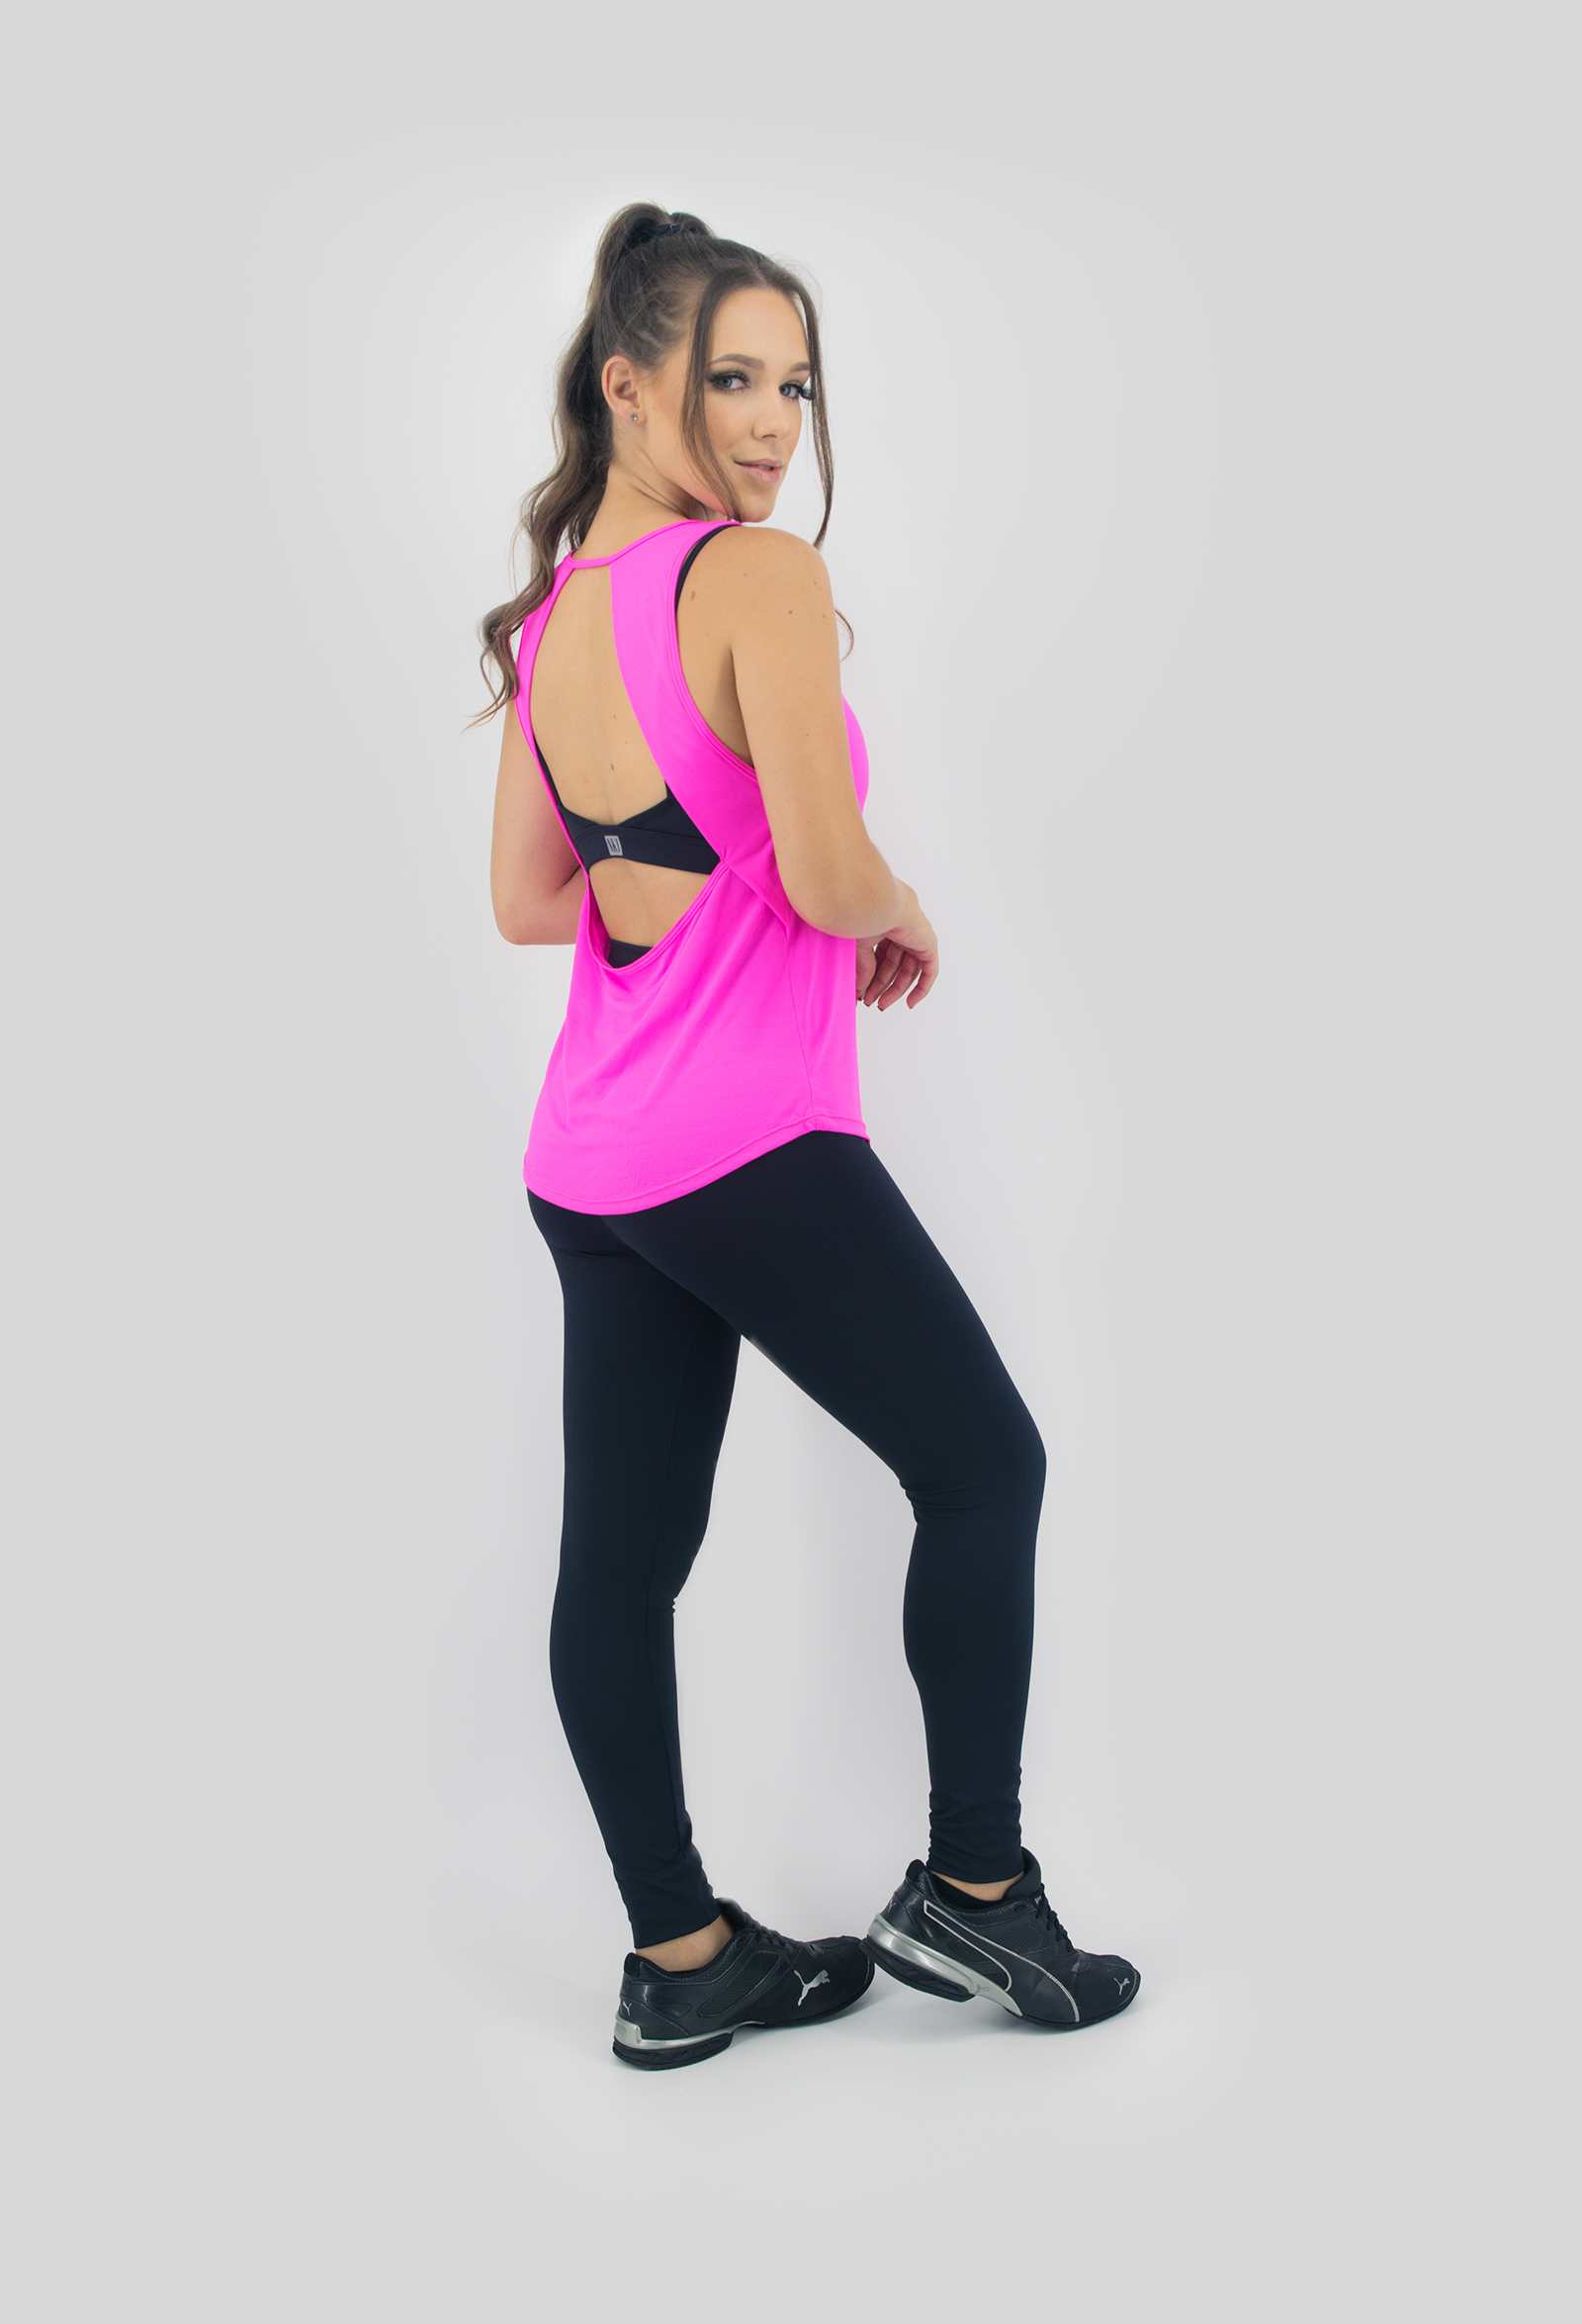 Regata Lux Pink, Coleção Move Your Body - NKT Fitwear Moda Fitness